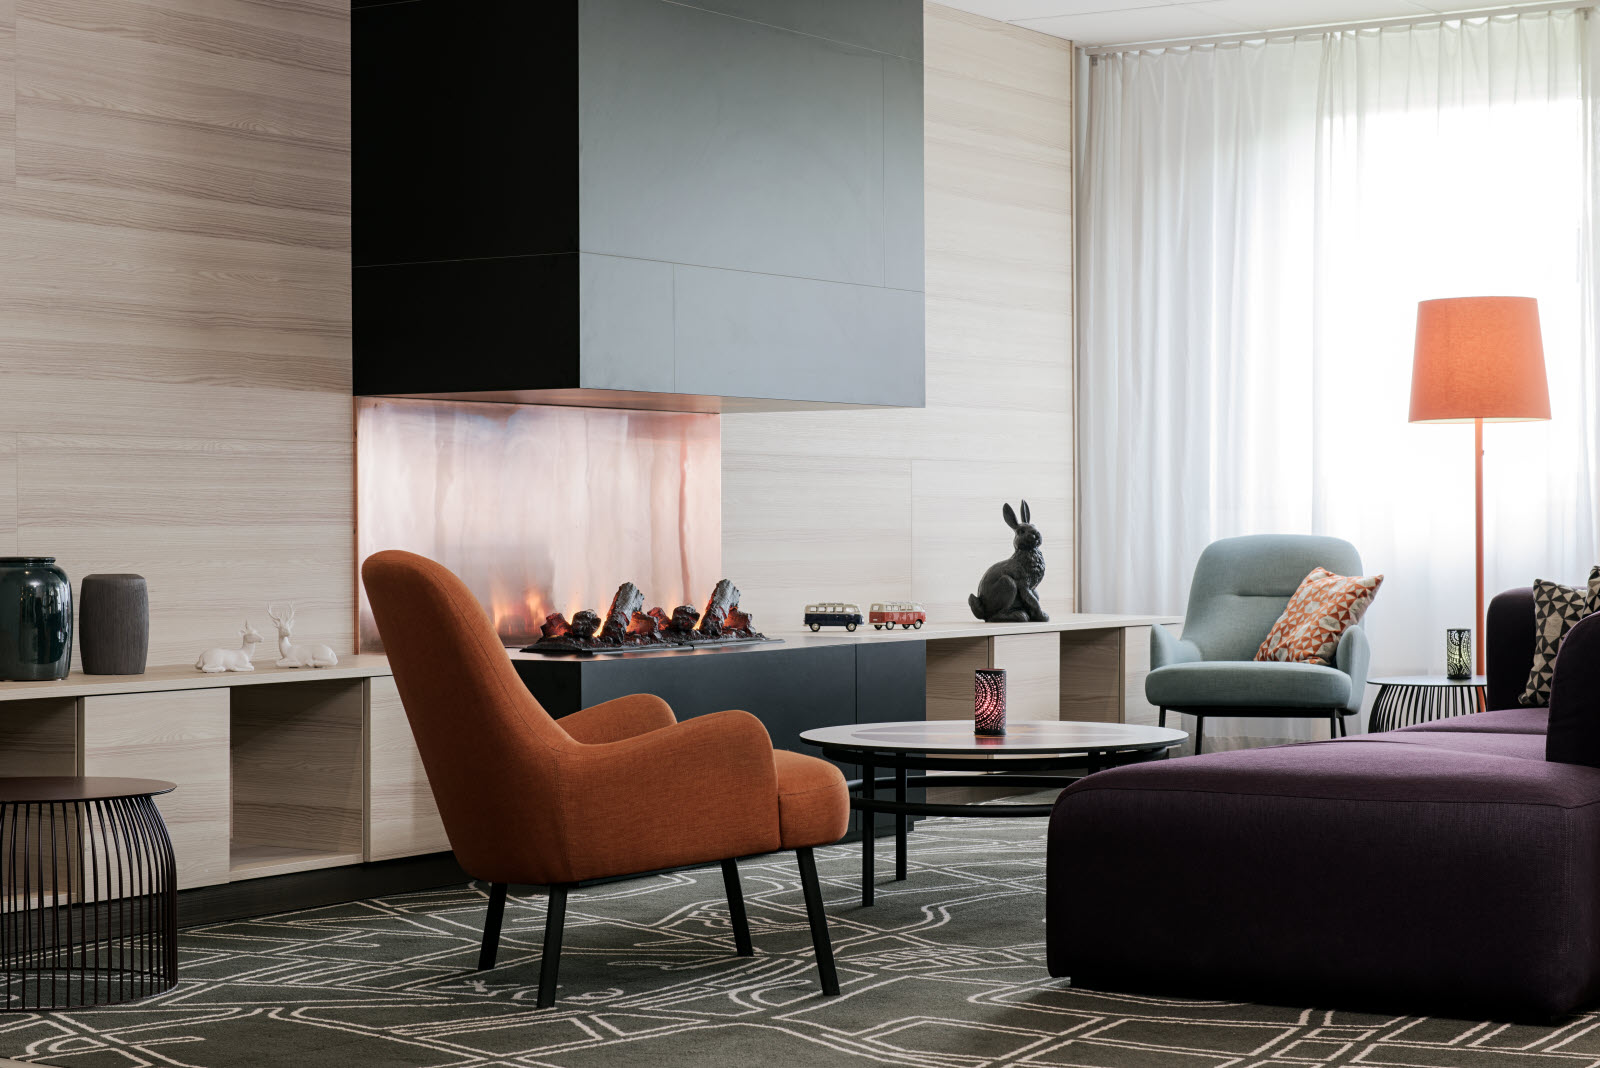 Scandic Segevang, lobby, fireplace